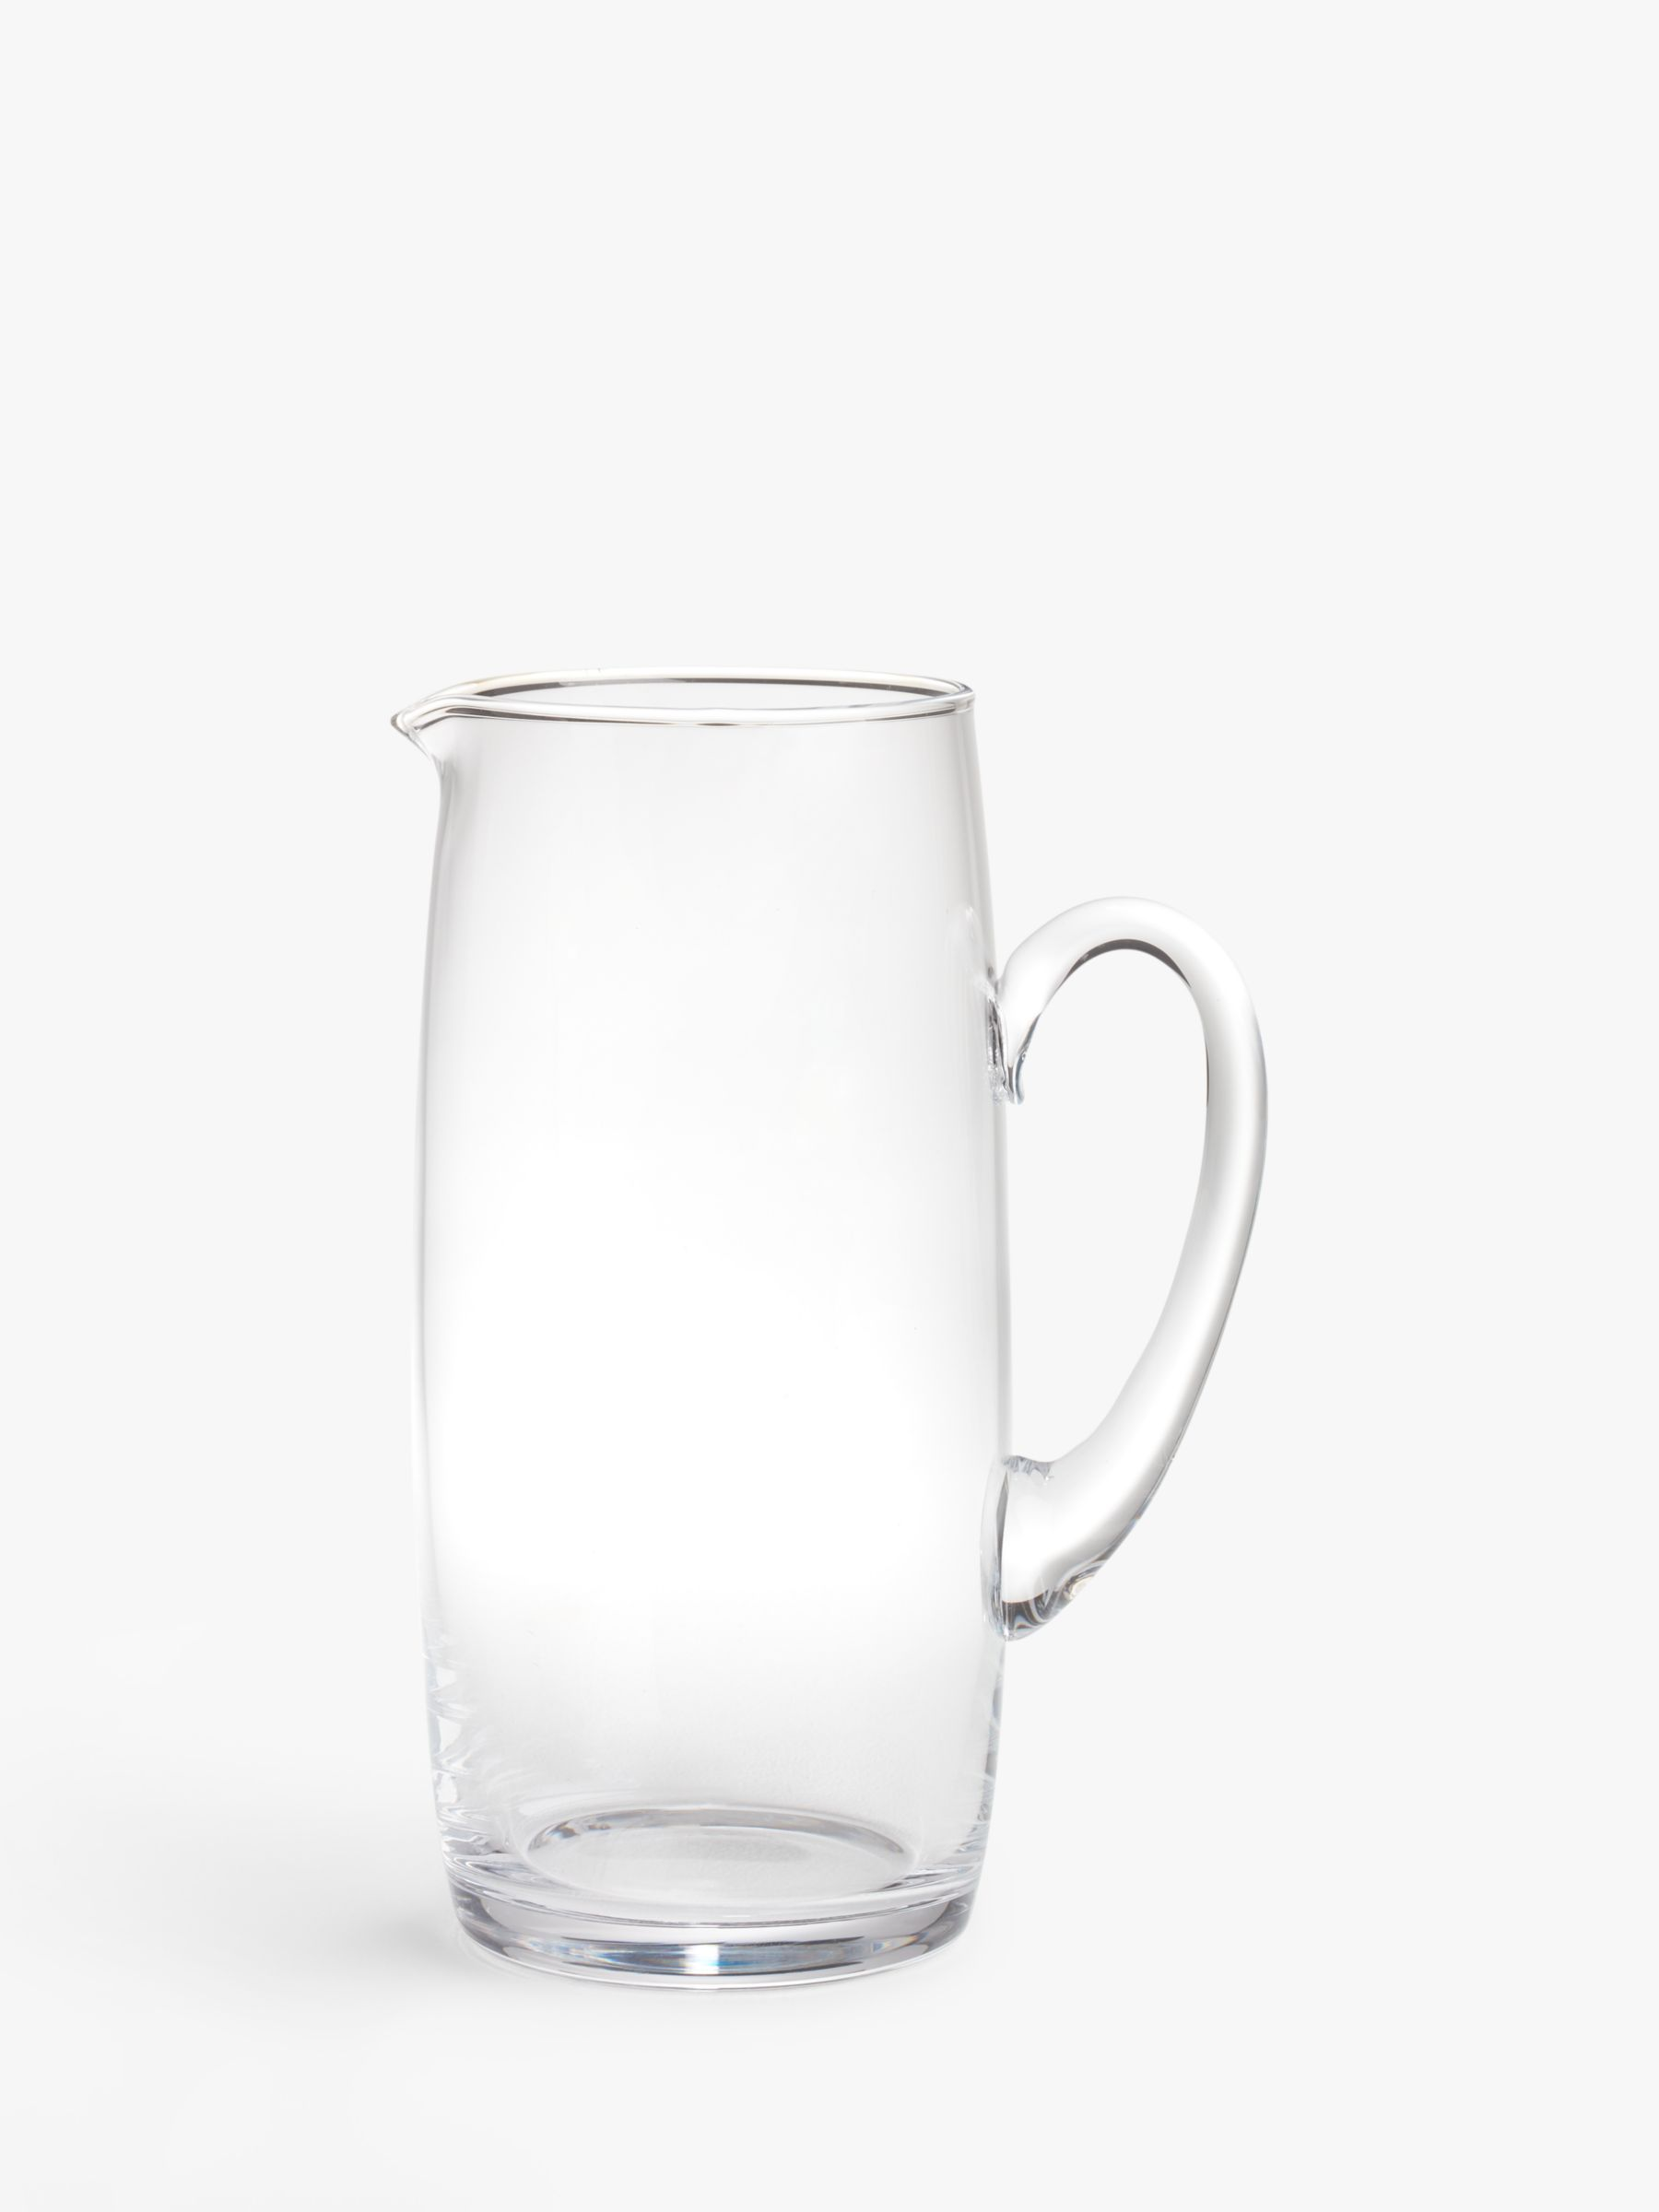 House by John Lewis House by John Lewis Glass Drinks Jug, Clear, 1.85L